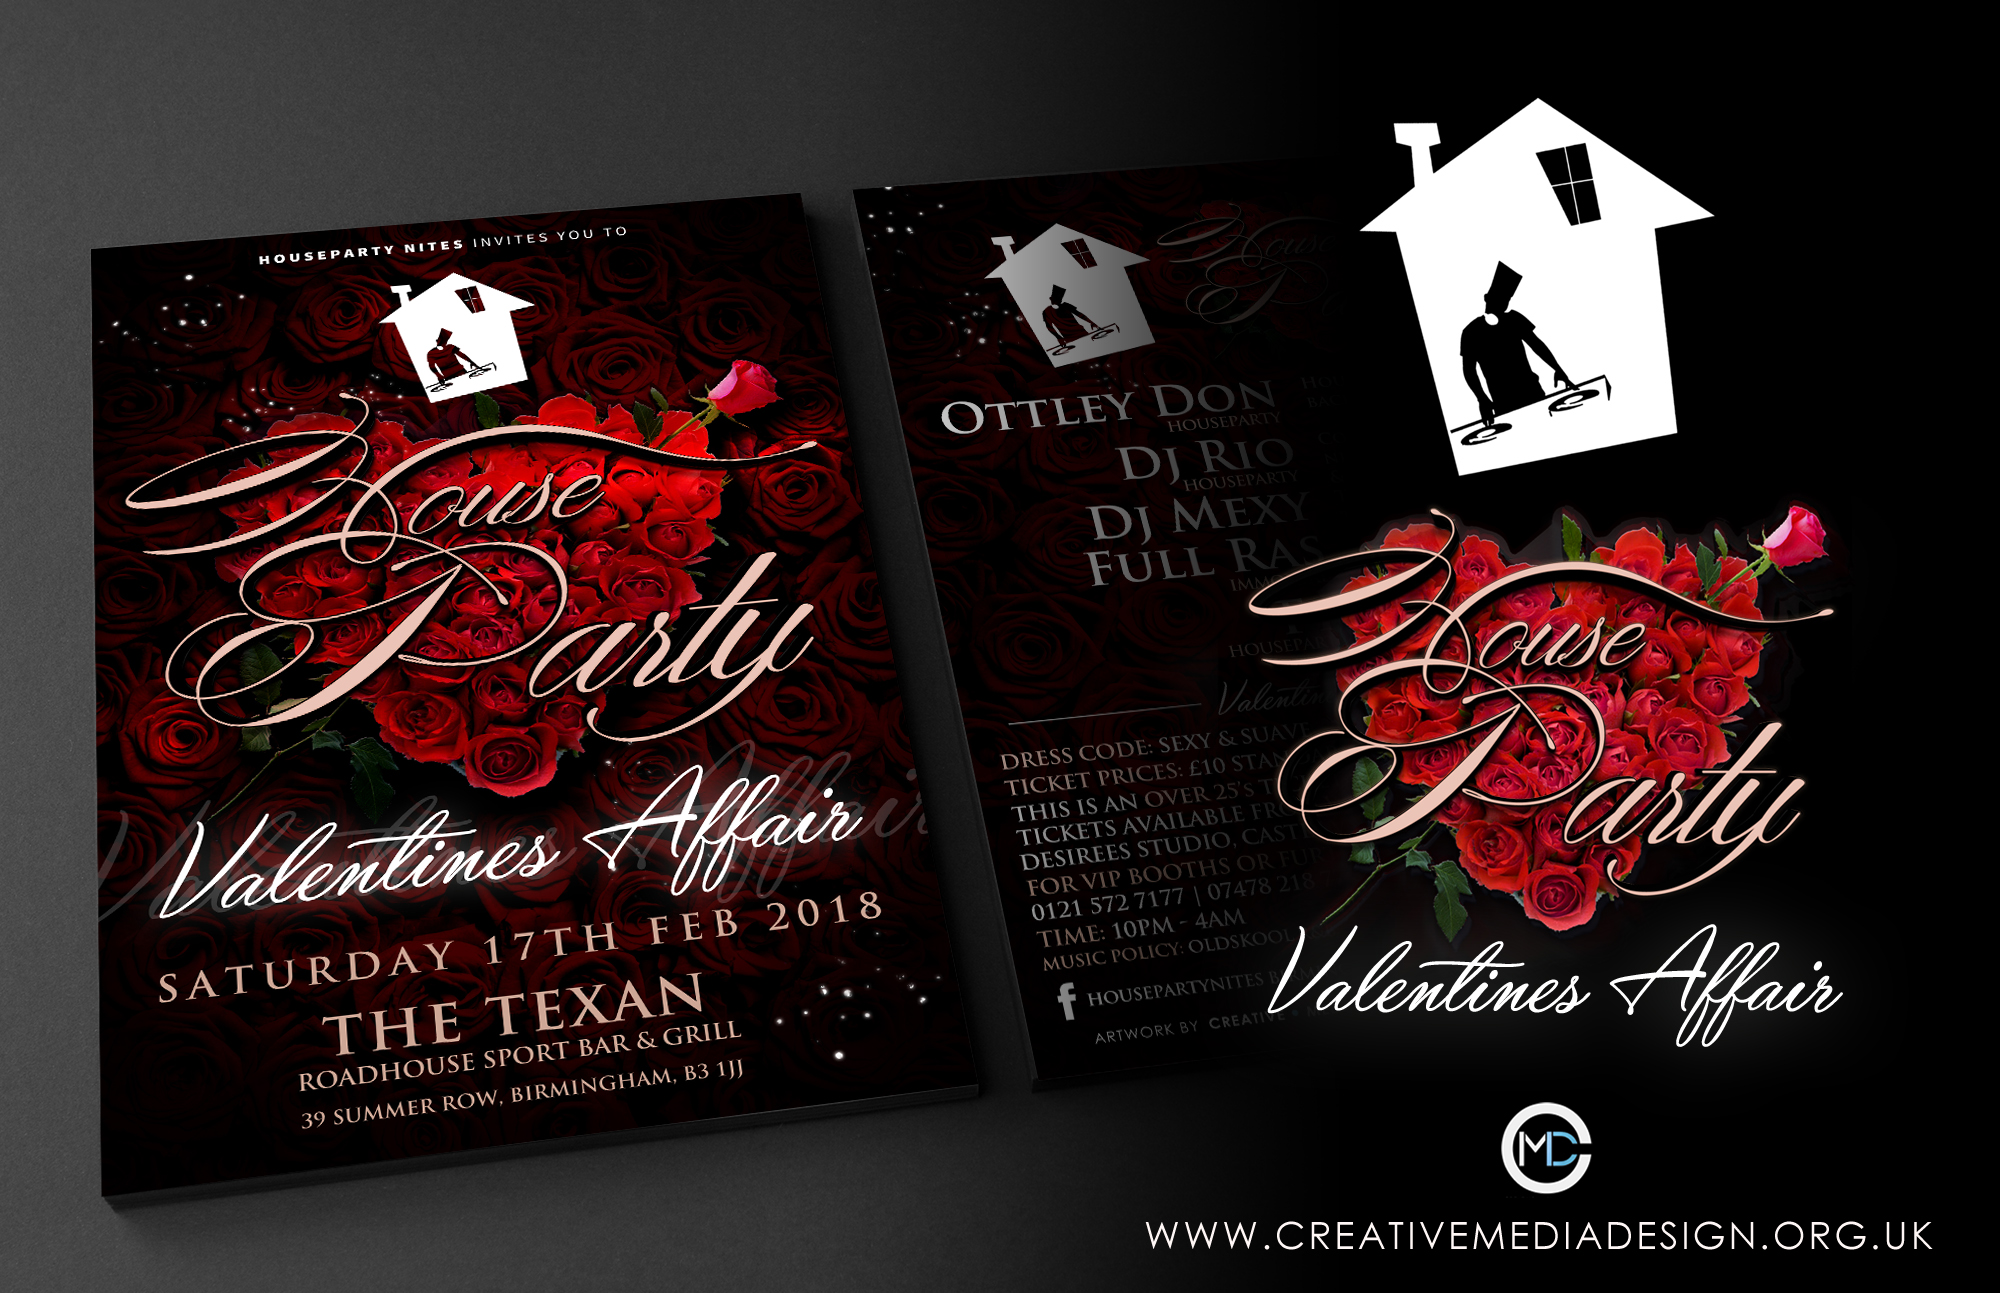 HOUSE PARTY VALENTINES AFFAIR